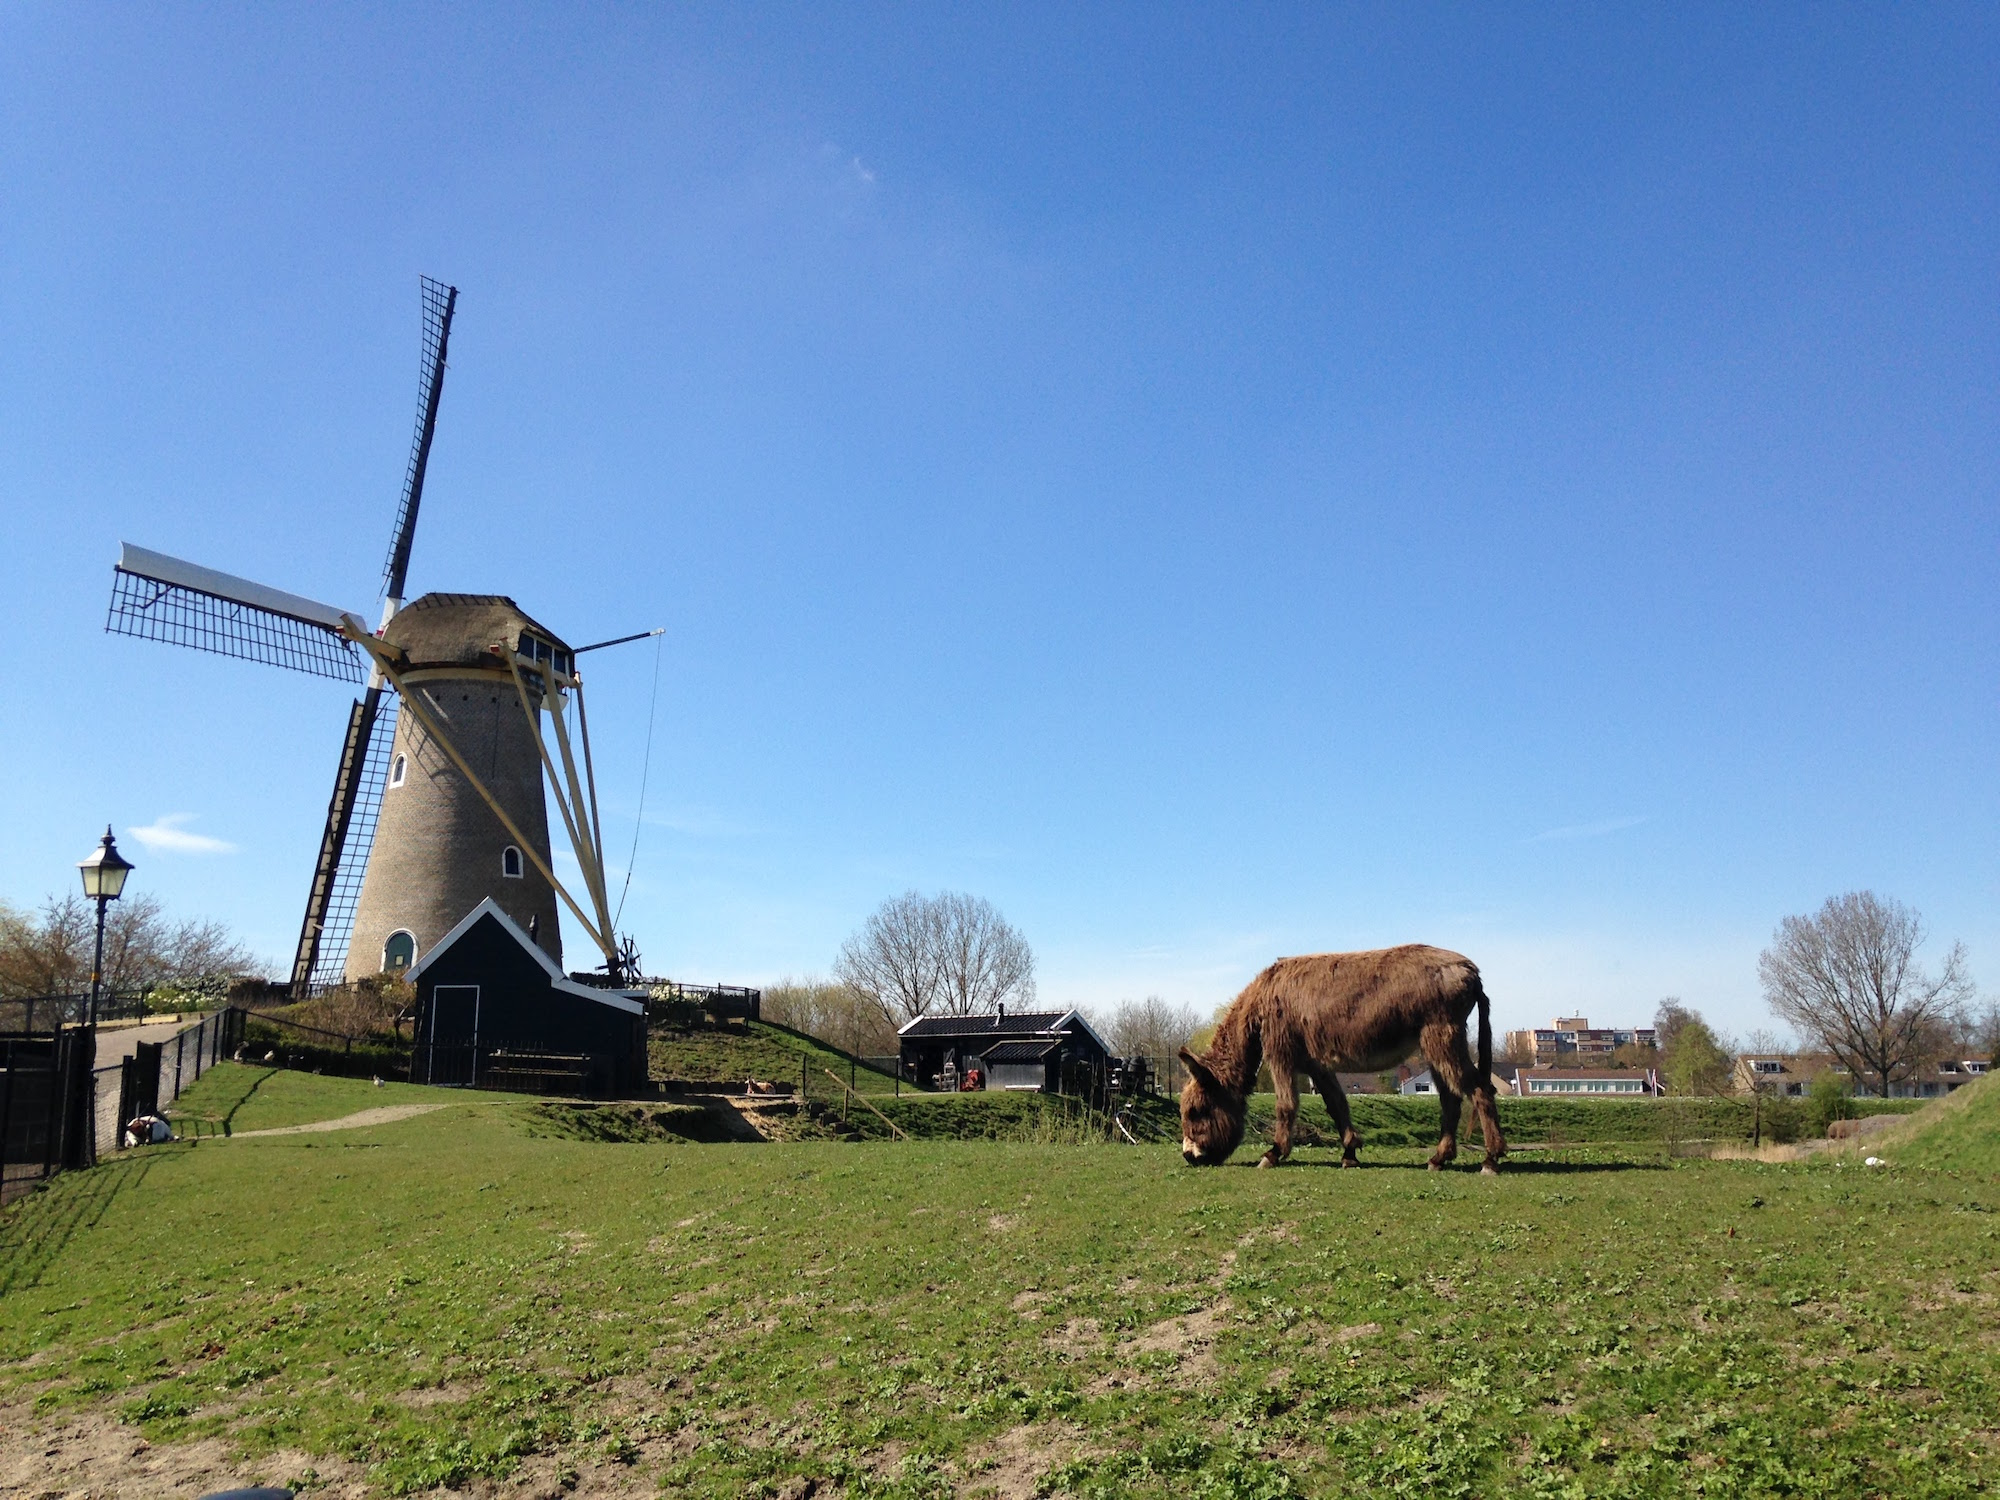 The Donkey at the Windmill